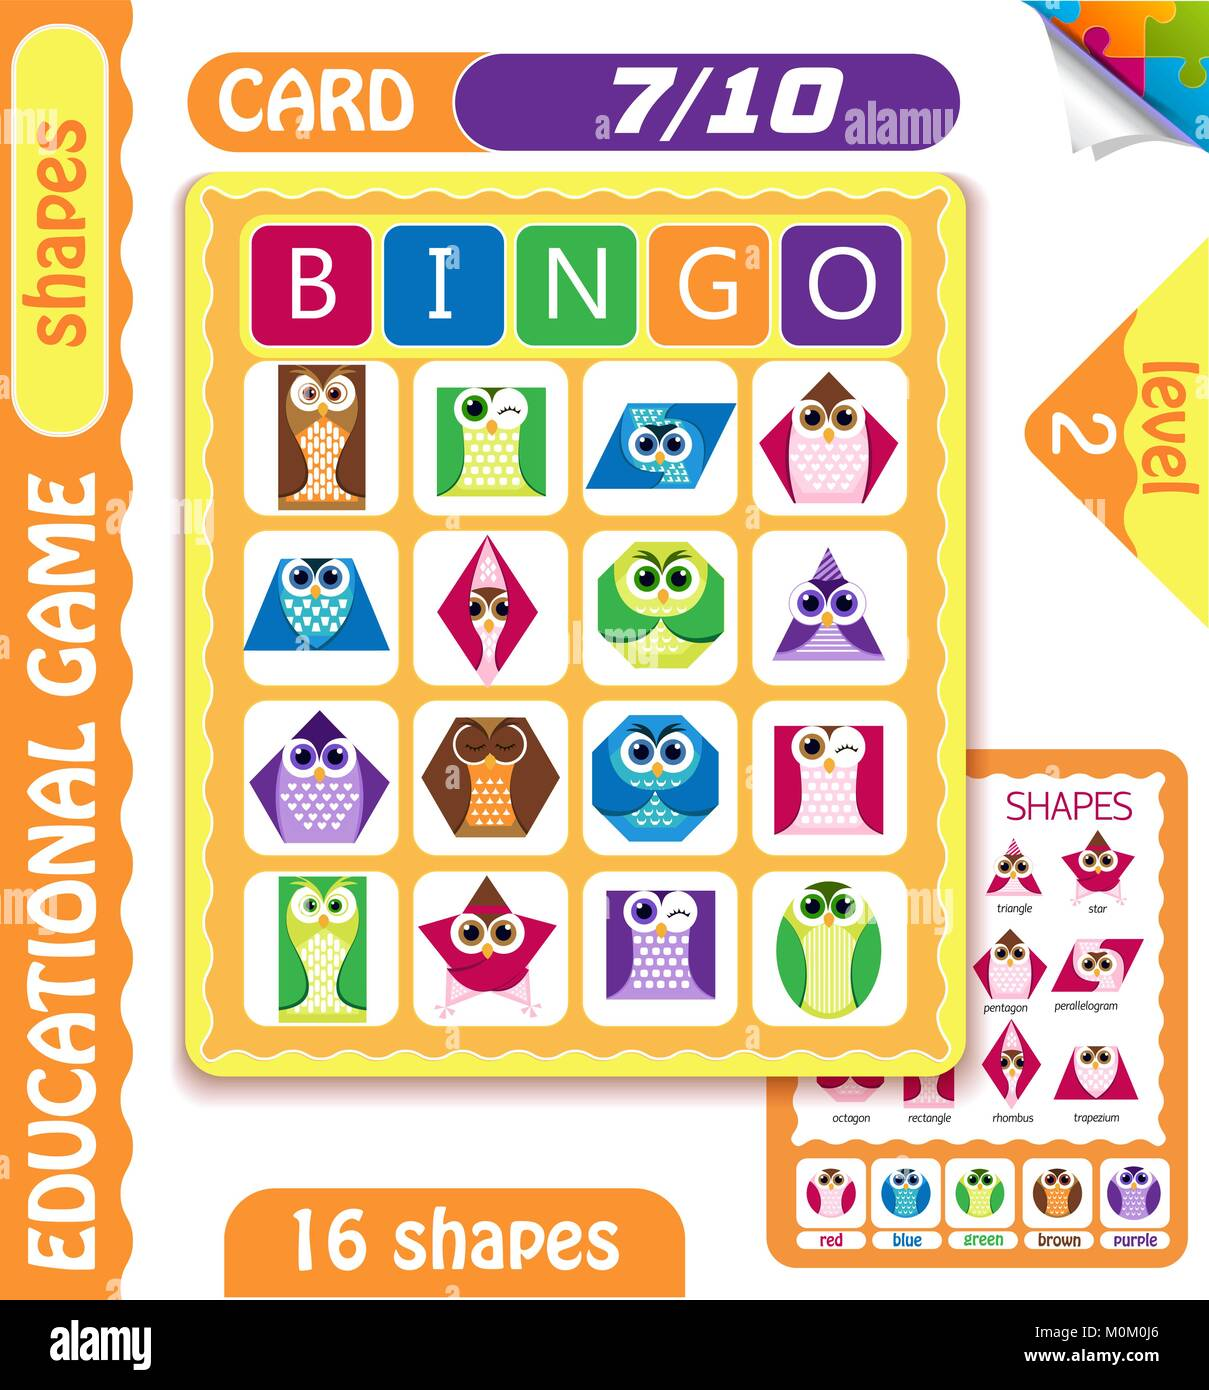 educational bingo game for preschool kids with shapes in the form of